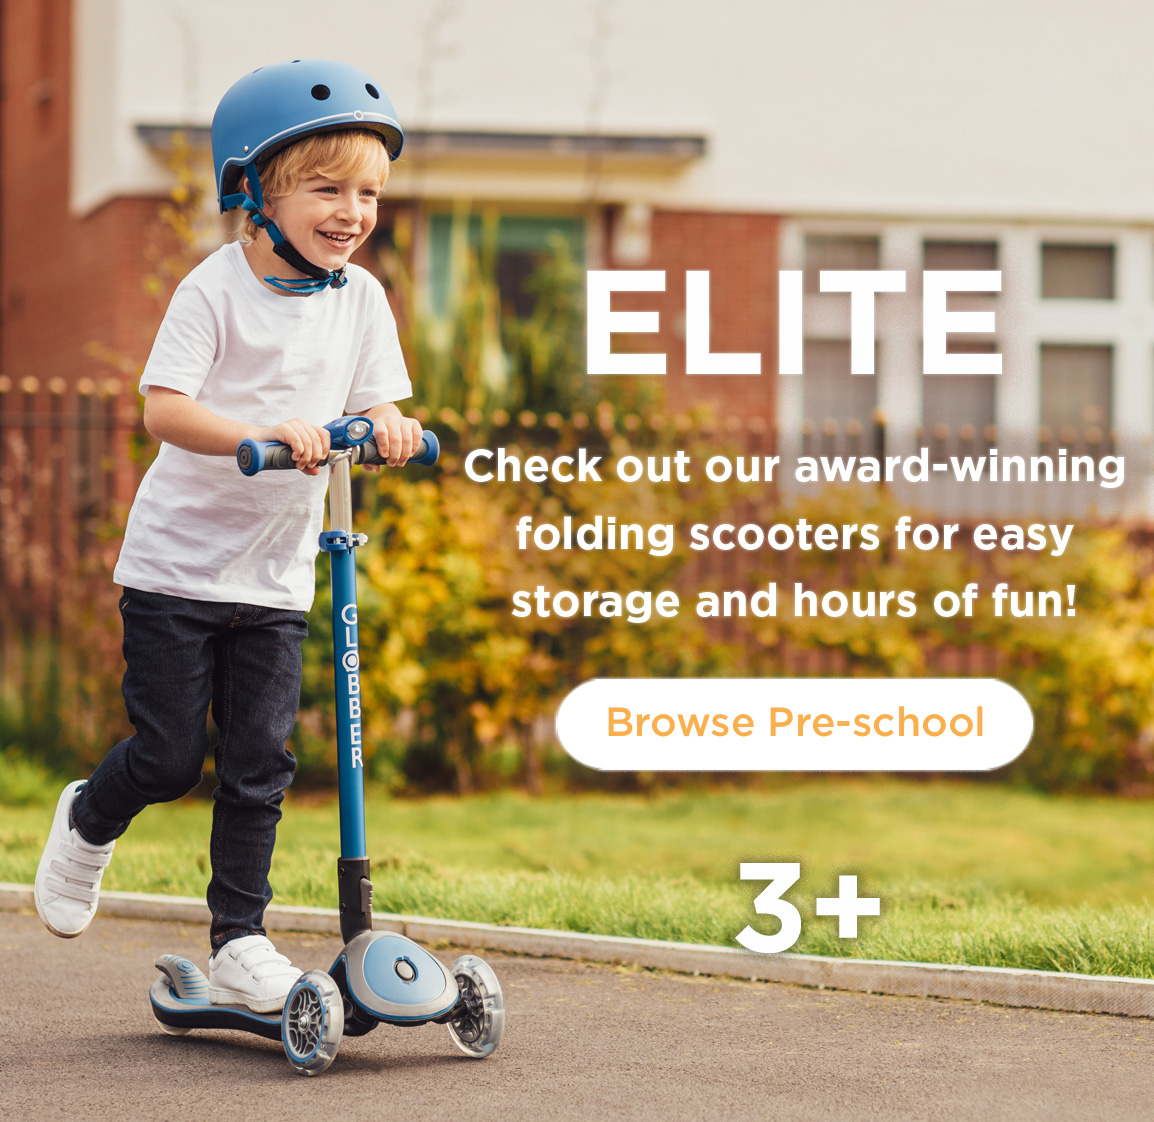 Check out our award-winning folding scooters for easy storage & hours of fun!